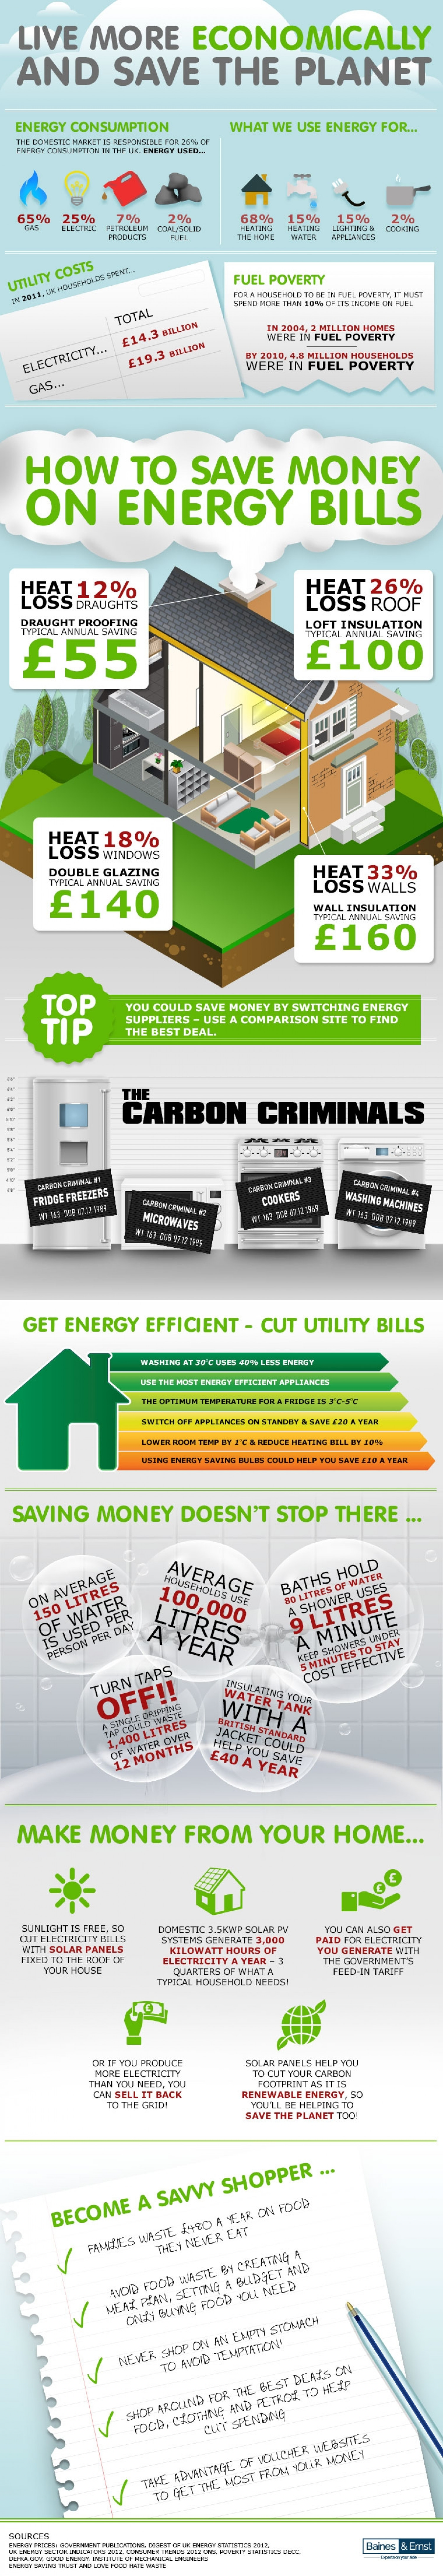 Green Living - Saves both the planet and you money Infographic